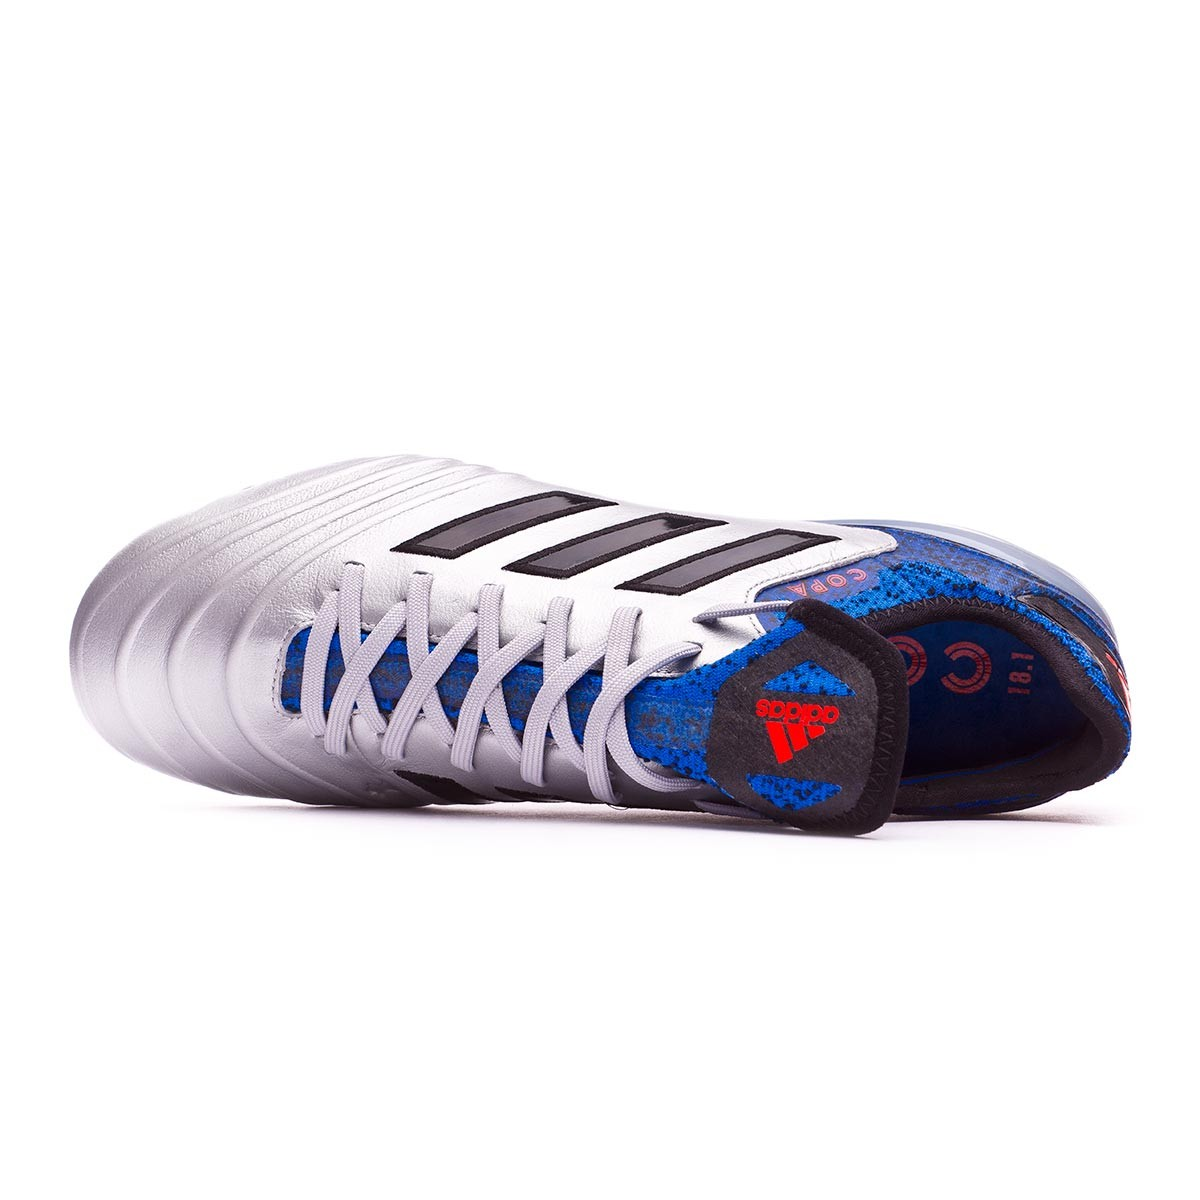 newest d71ec f9422 Boot adidas Copa 18.1 FG Silver metallic-Core black-Football blue - Football  store Fútbol Emotion